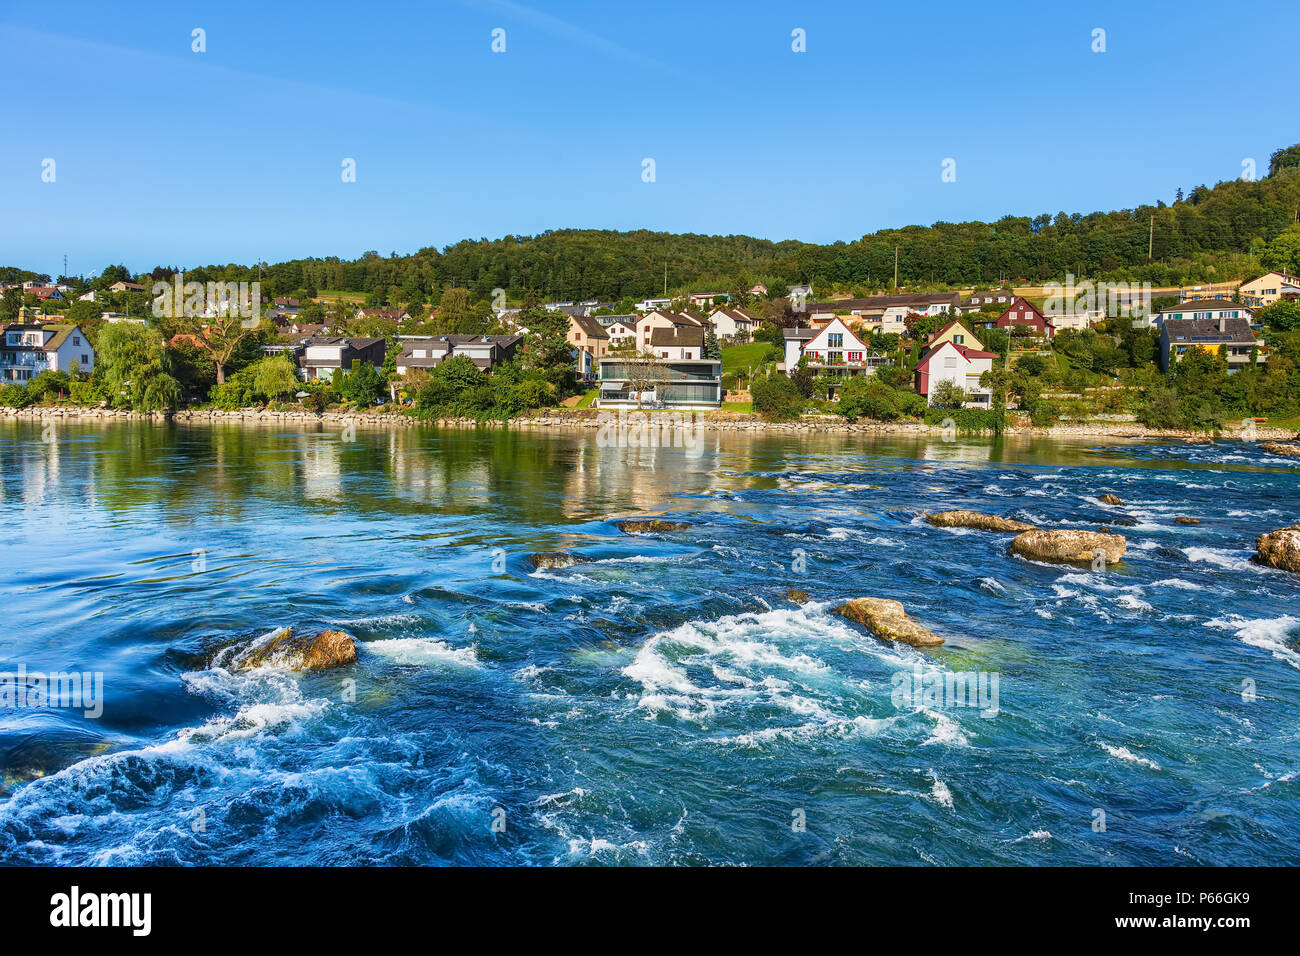 The Rhine river between the city of Schaffhausen and the Rhine Falls in Switzerland in summertime. Stock Photo